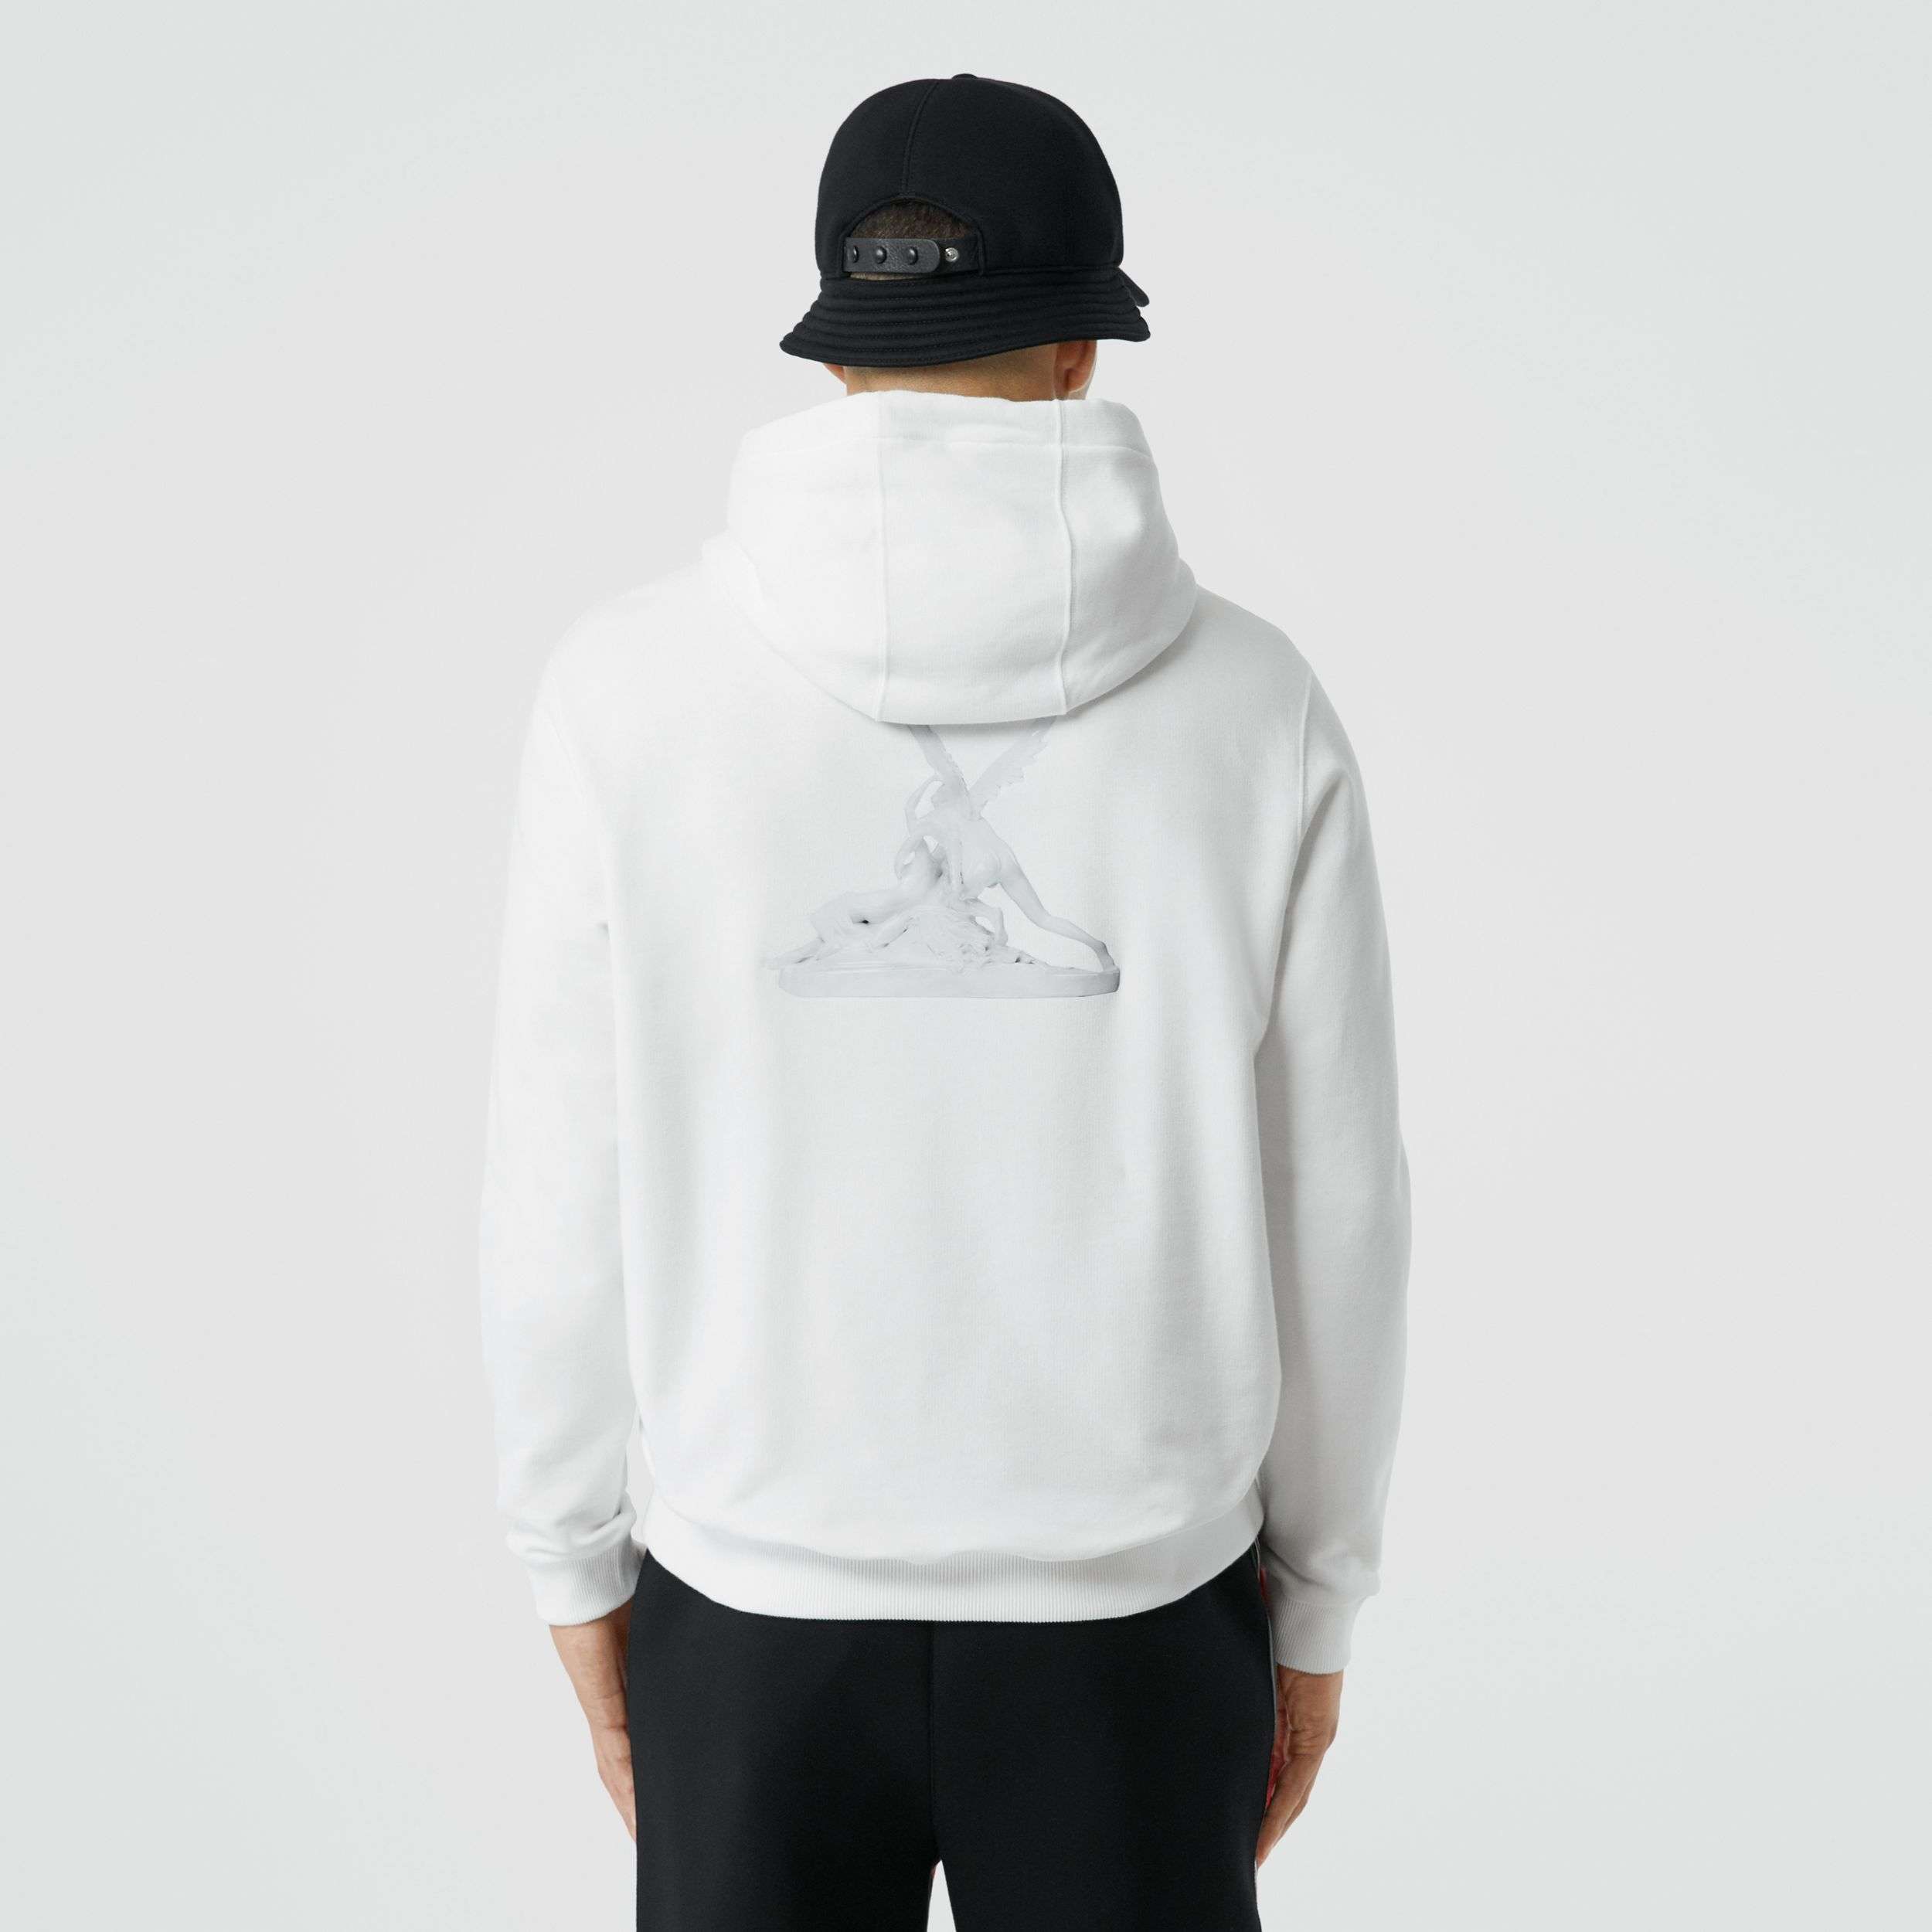 Cupid Print Cotton Oversized Hoodie in White - Men | Burberry United States - 3